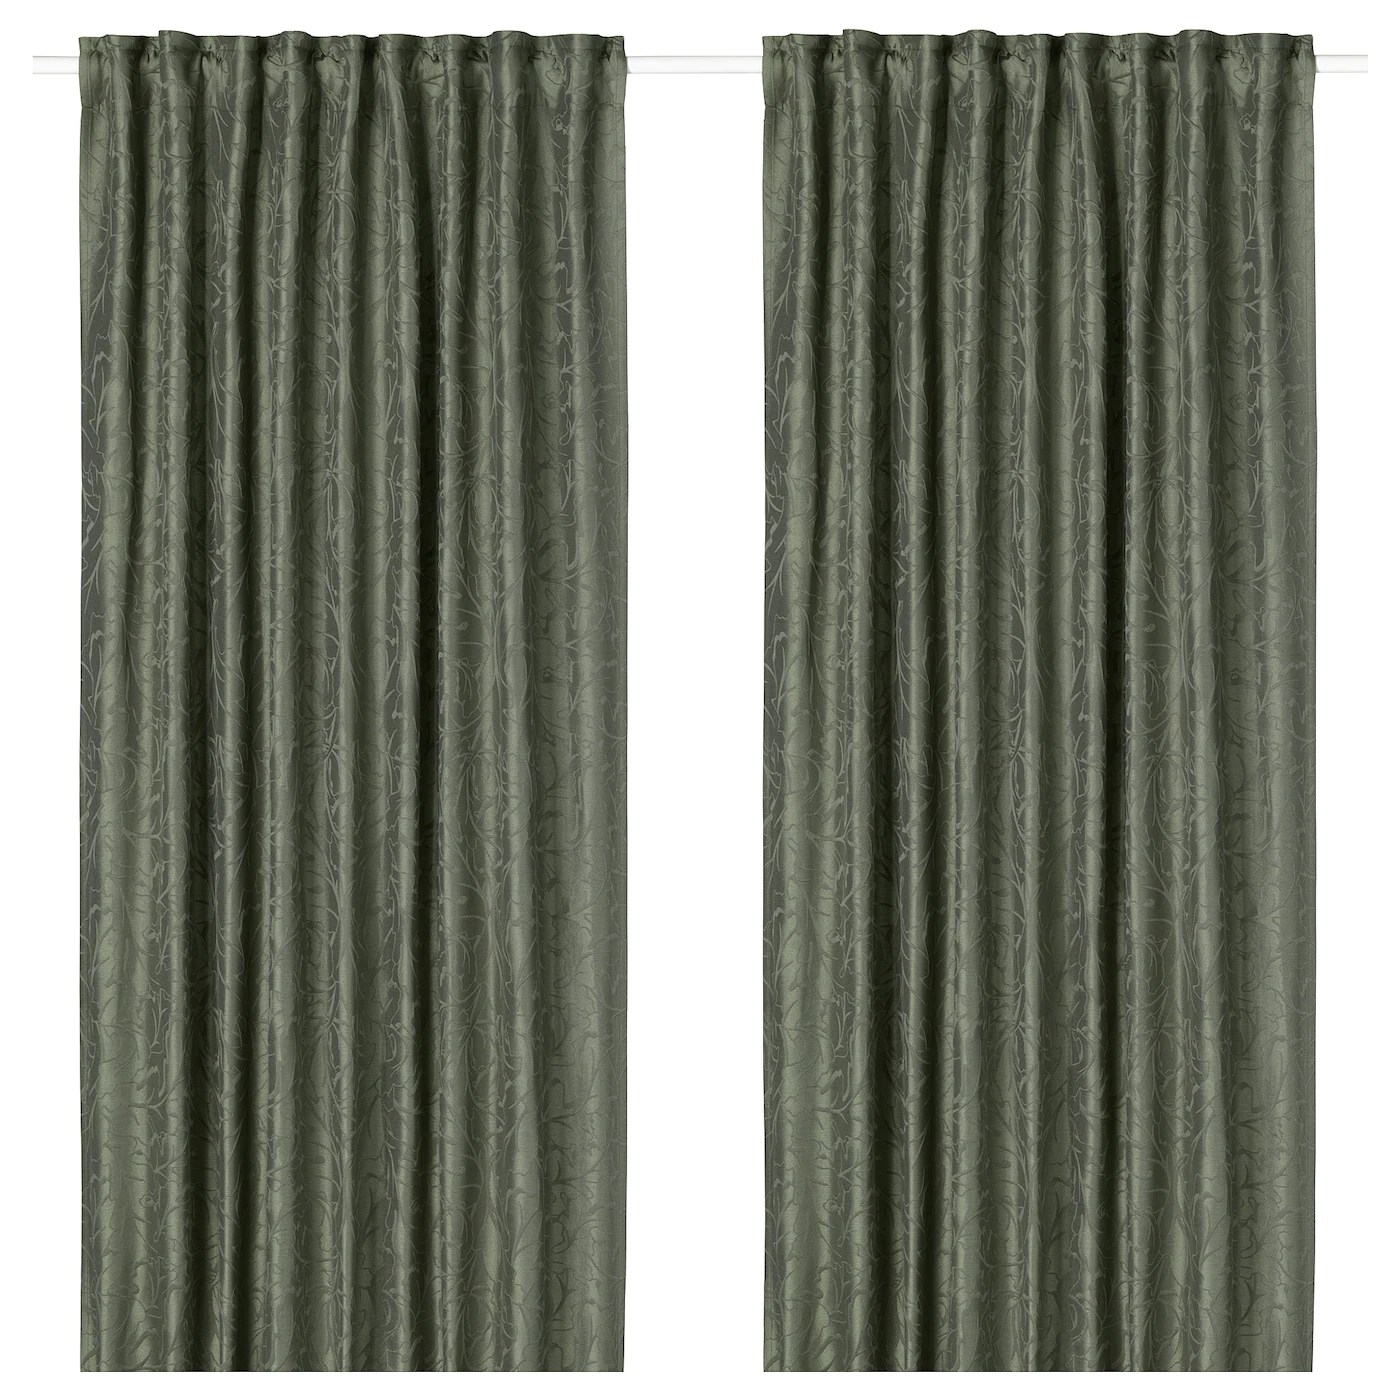 94 Inch Blackout Curtains Curtains Ready Made Curtains Ikea